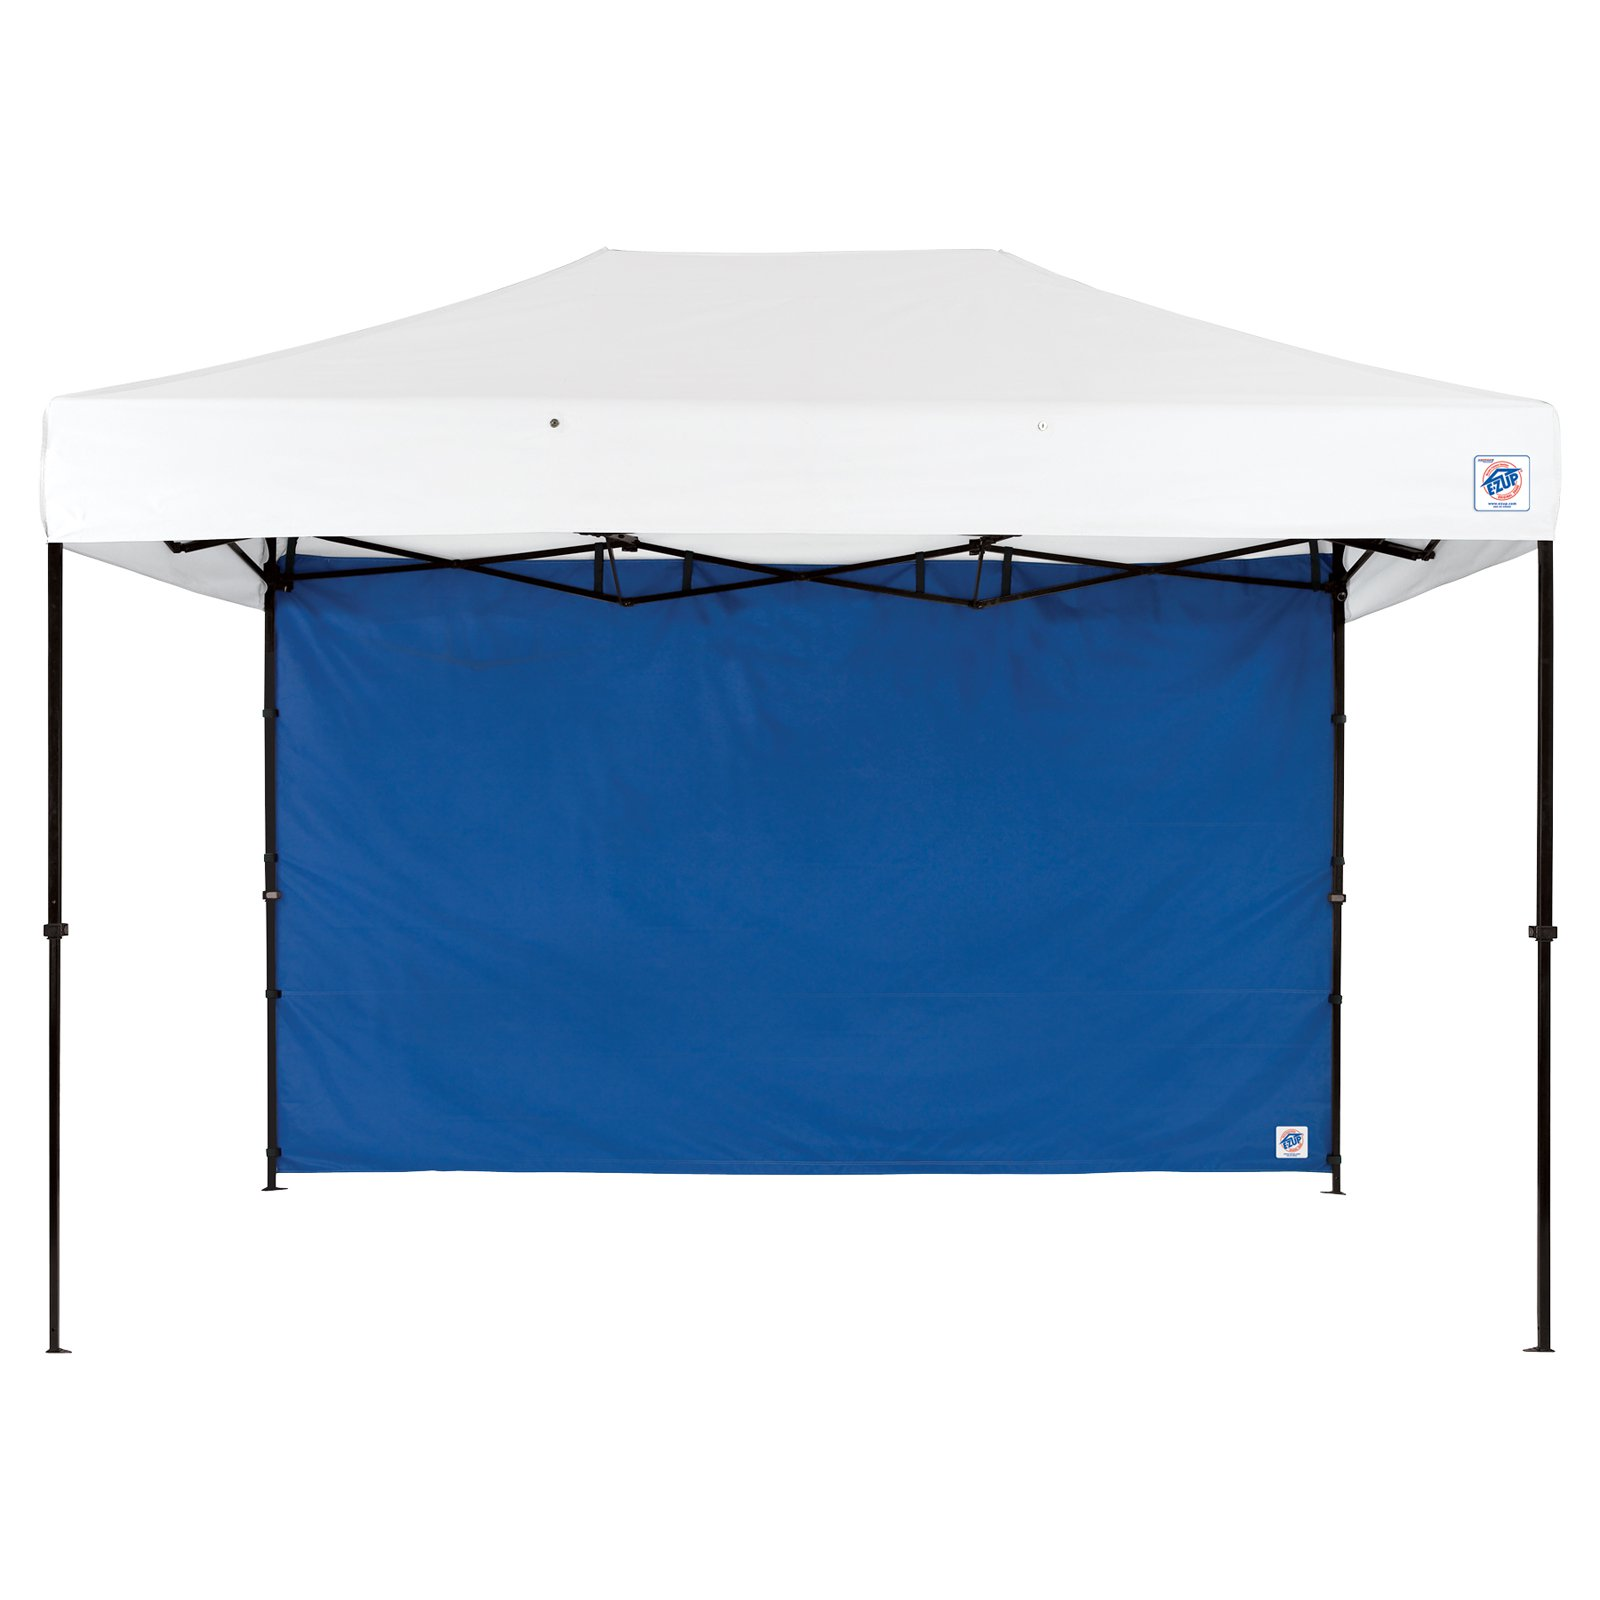 sc 1 st  Walmart & E-Z Up 8x12 Foot Speed Shelter Canopy Sidewall-Blue - Walmart.com